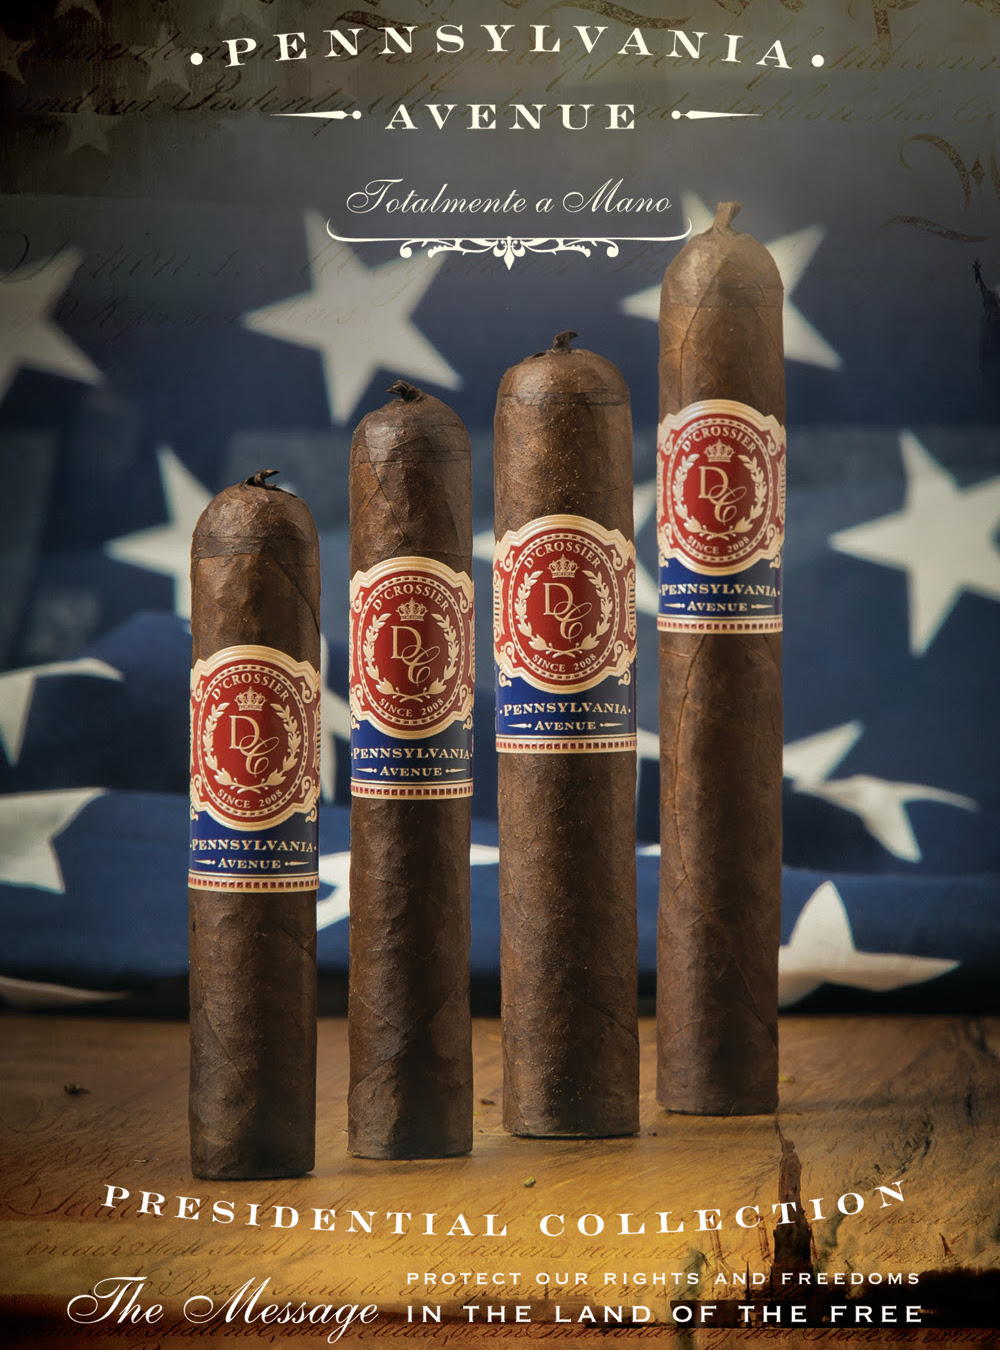 Cigar News: D'Crossier Presidential Collection Pennsylvania Avenue to Launch at 2016 IPCPR